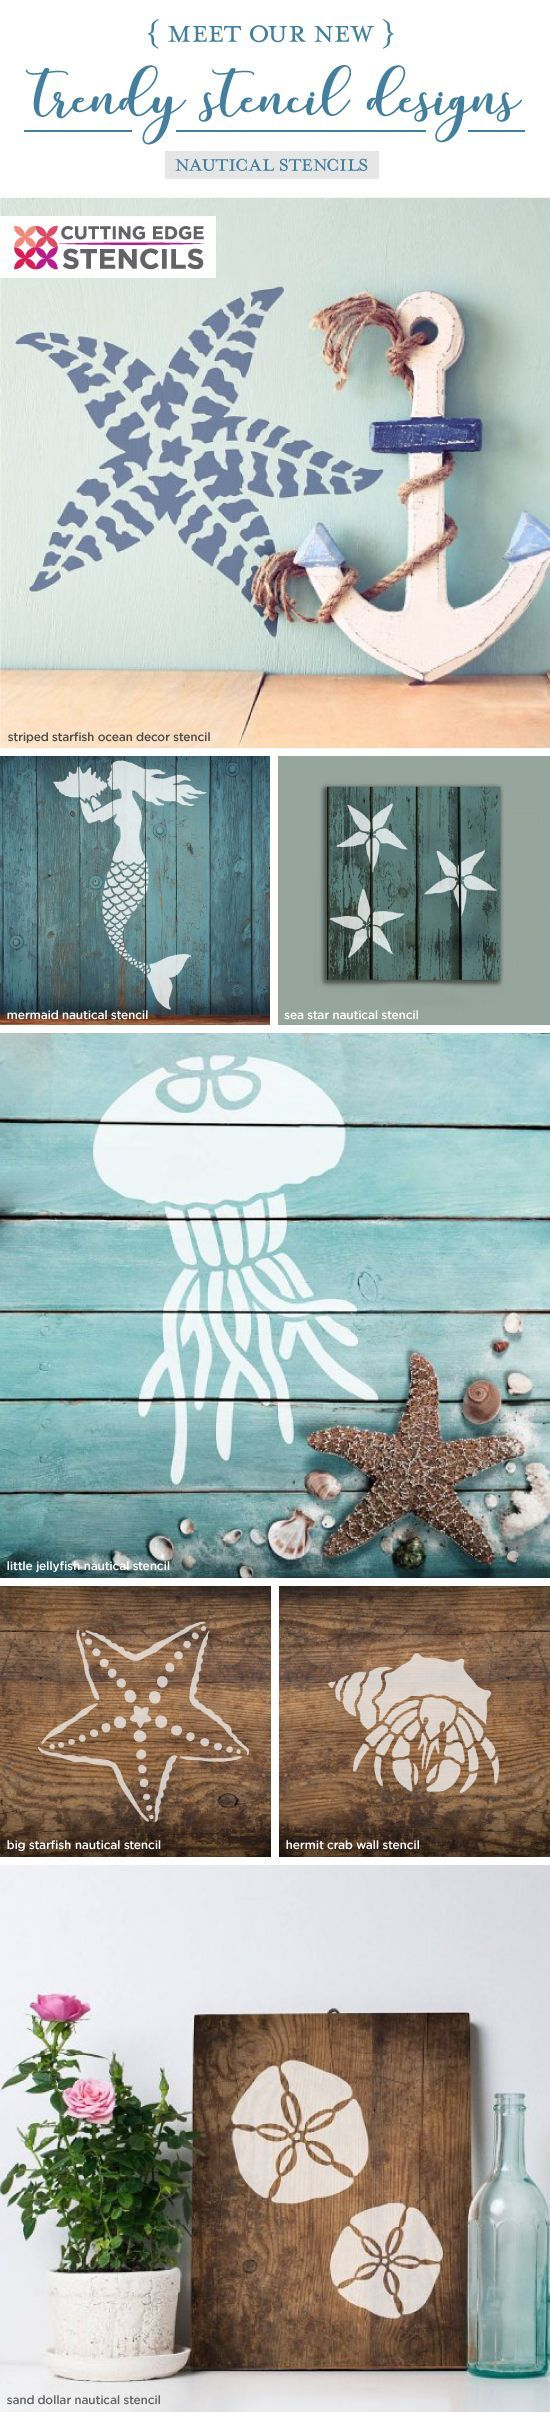 355 best stencil craft ideas images on pinterest craft ideas cutting edge stencils shares a new wall stencil collection that includes beach inspired and nautical patterns amipublicfo Gallery